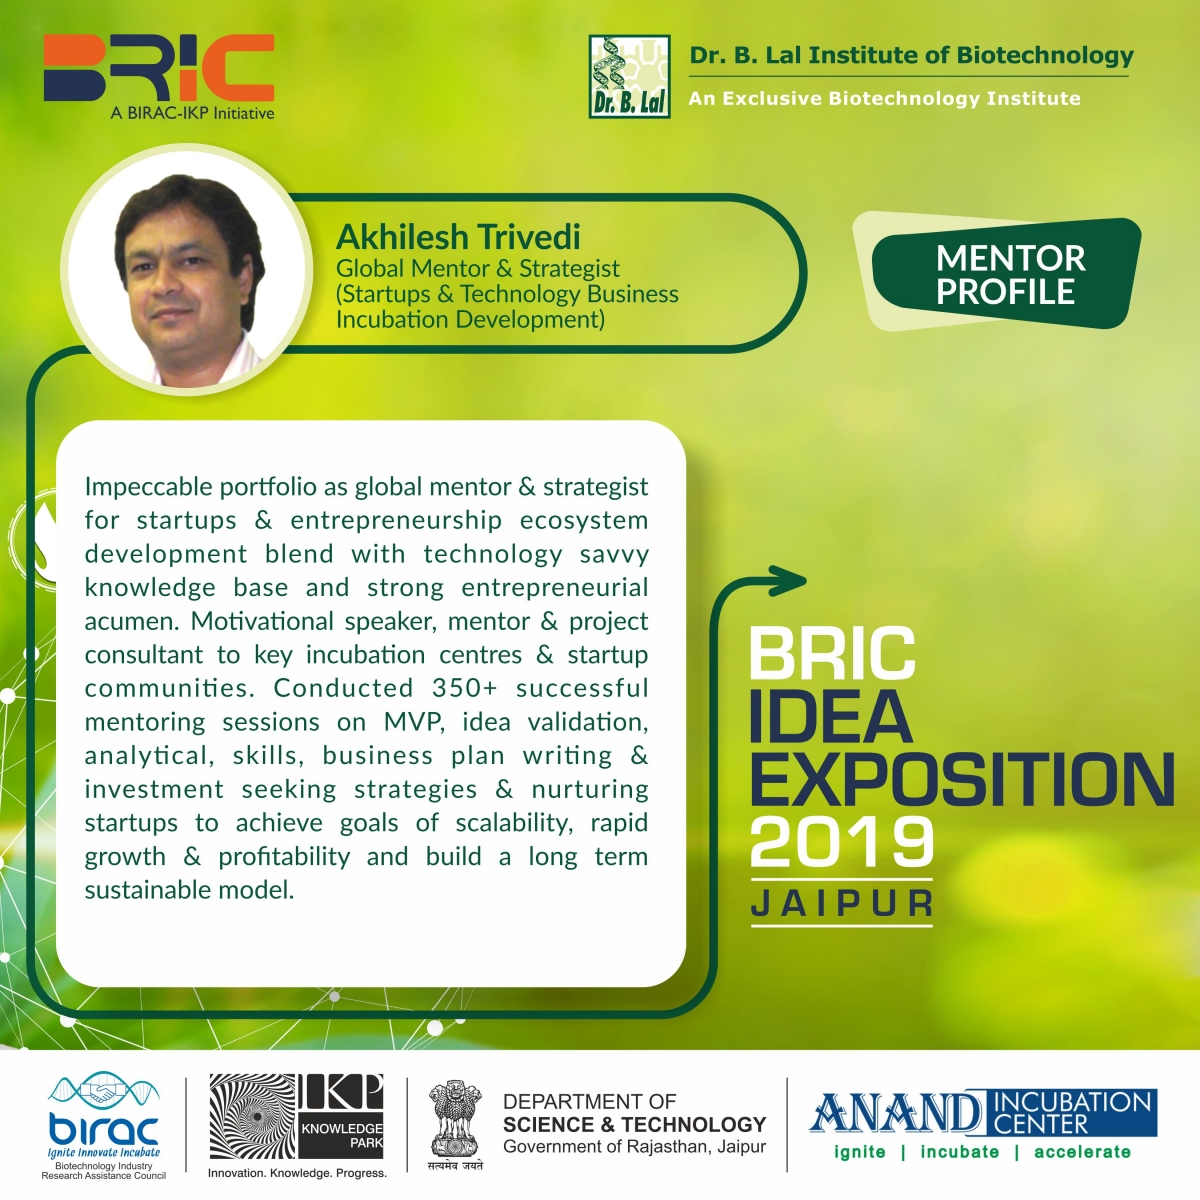 Mentors Profile - BRIC idea Exposition 2019